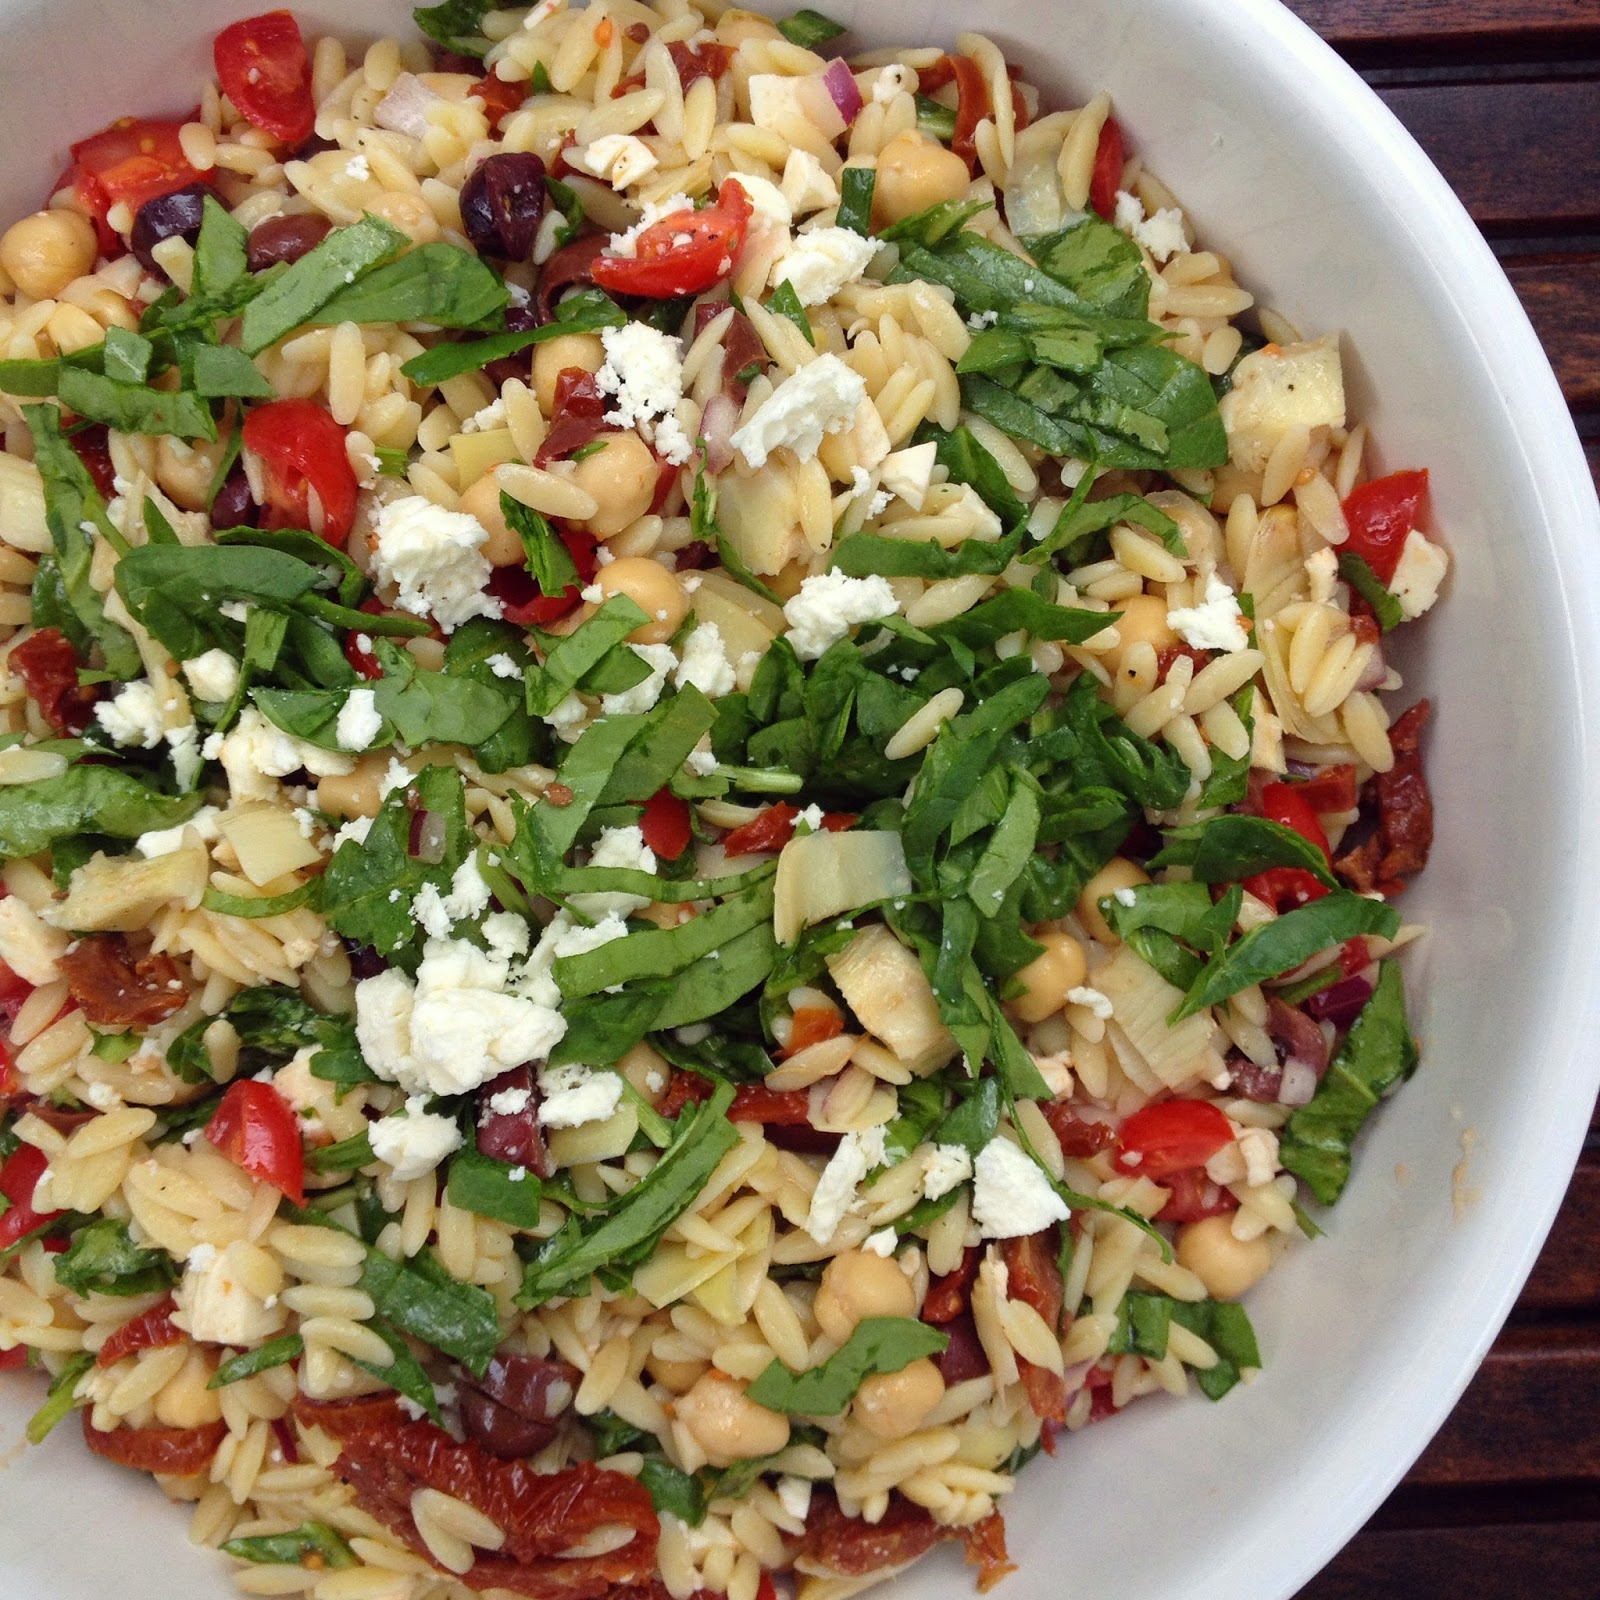 Mediterranean Pork And Orzo Recipe: Designer Bags And Dirty Diapers: Mediterranean Orzo Salad